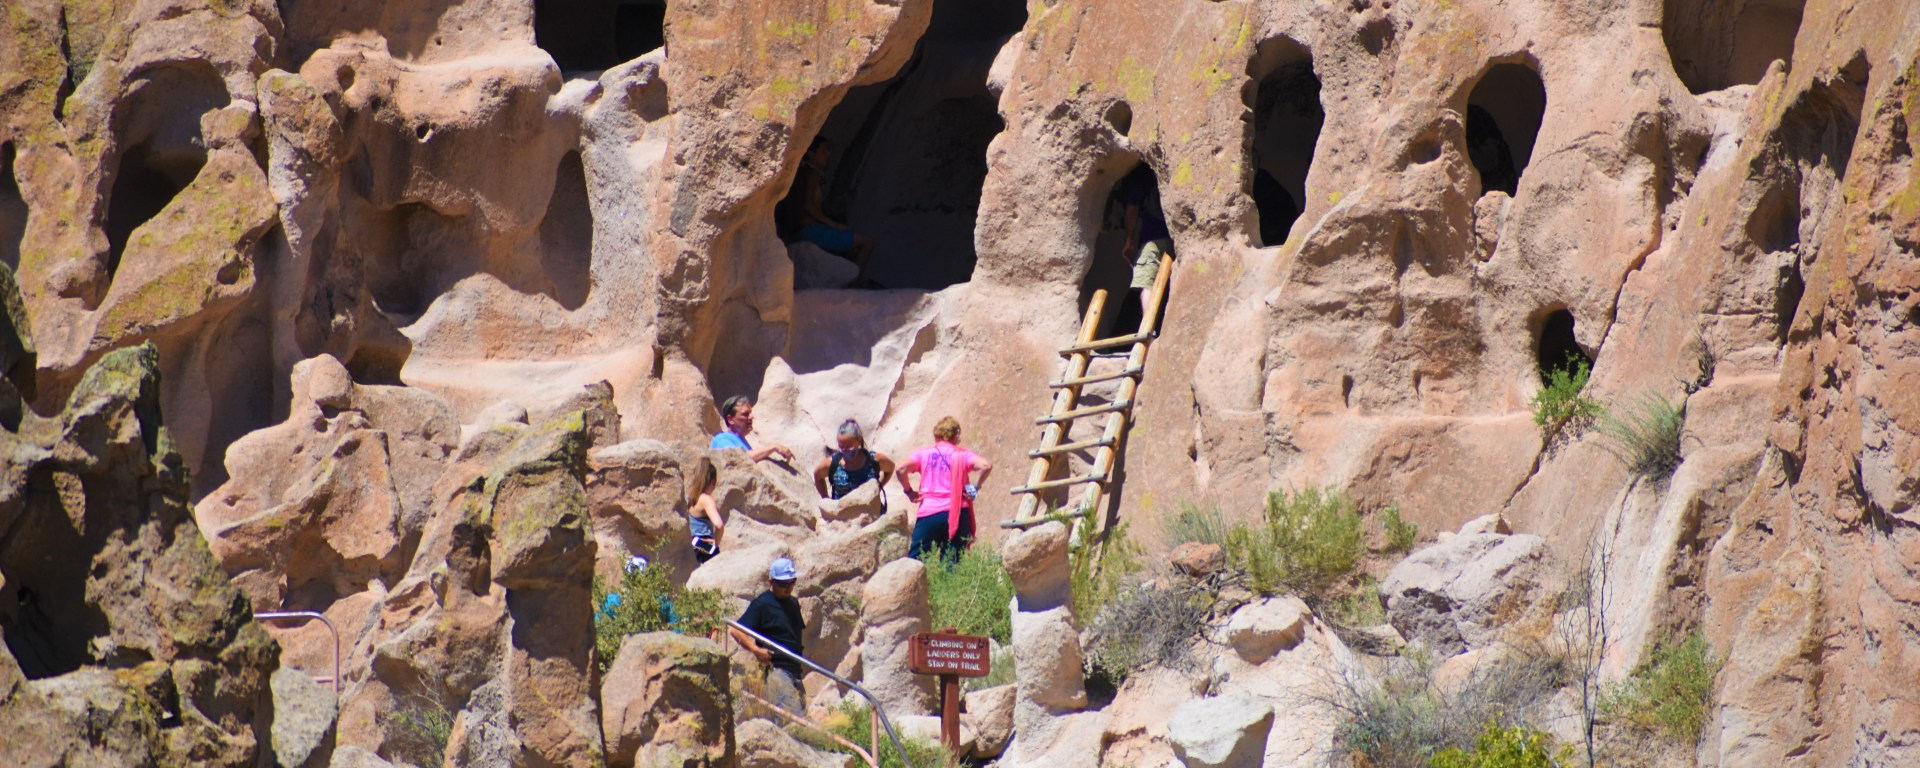 Rock face at Bandelier National Park. People climbing up a ladder to one of the Native American cave dewellings